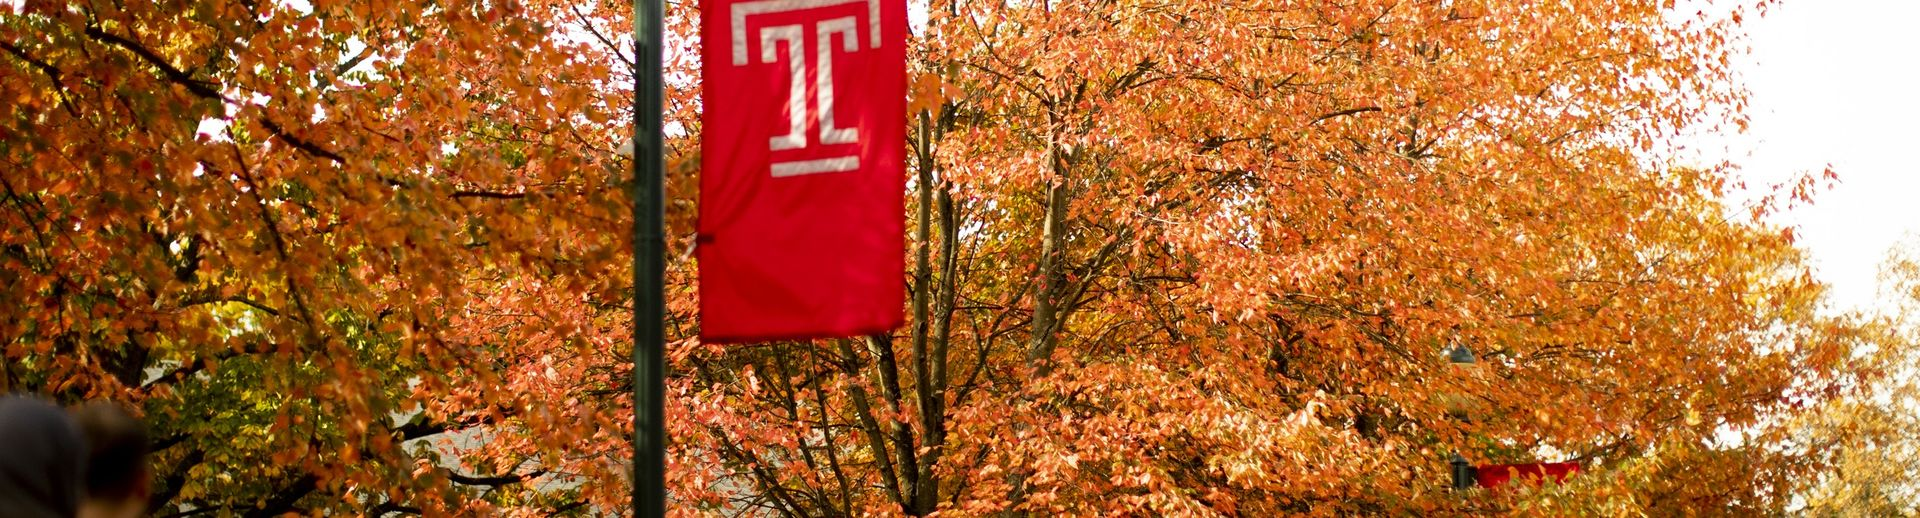 Students walking under a Temple T flag and trees with colorful autumn leaves